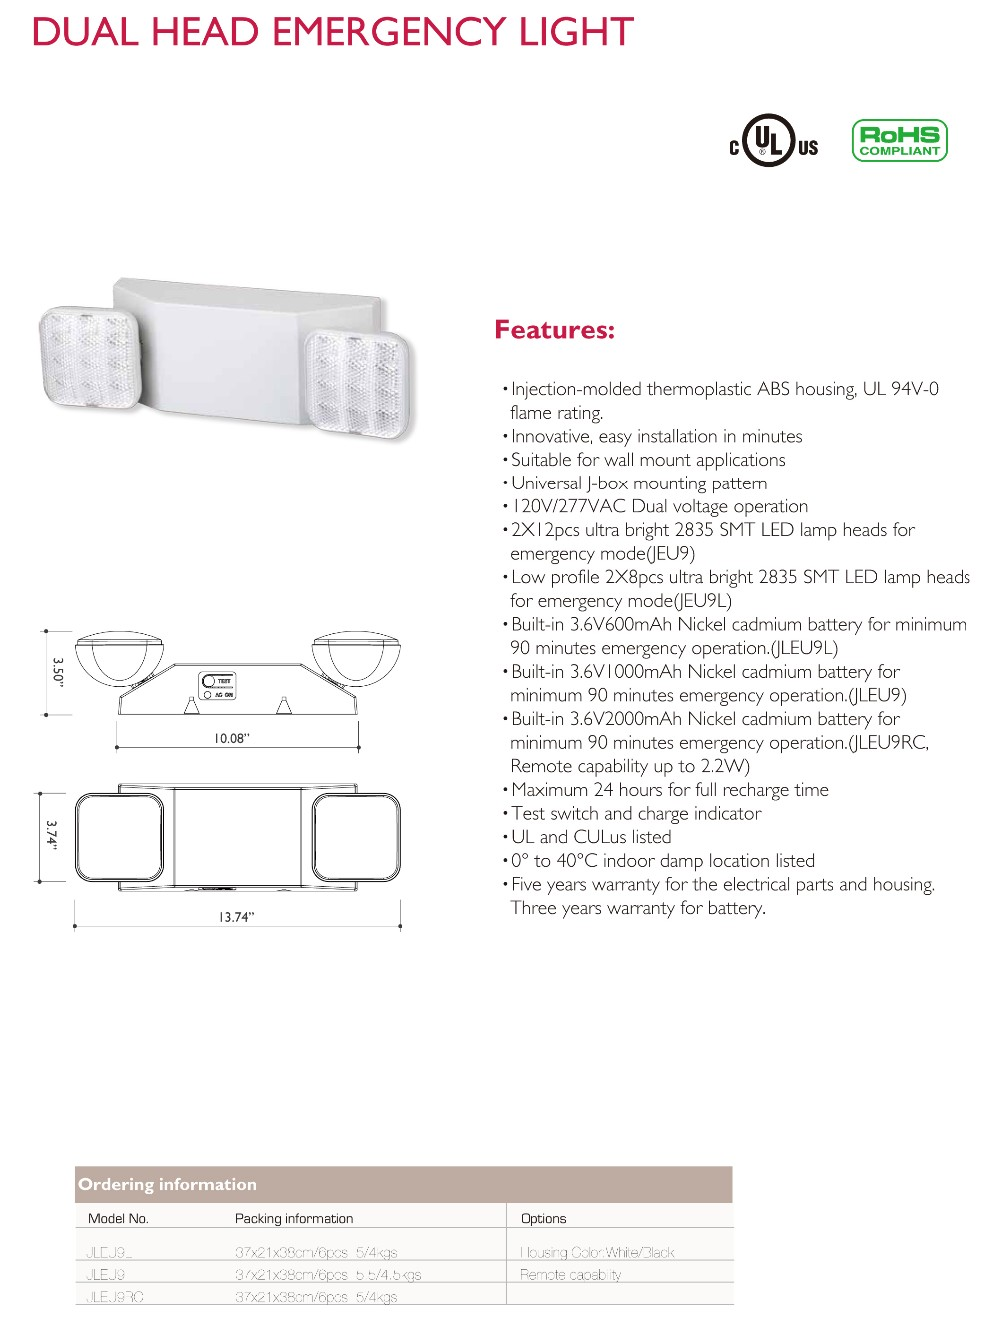 Wall-mounted ultra bright dual head LED emergency light